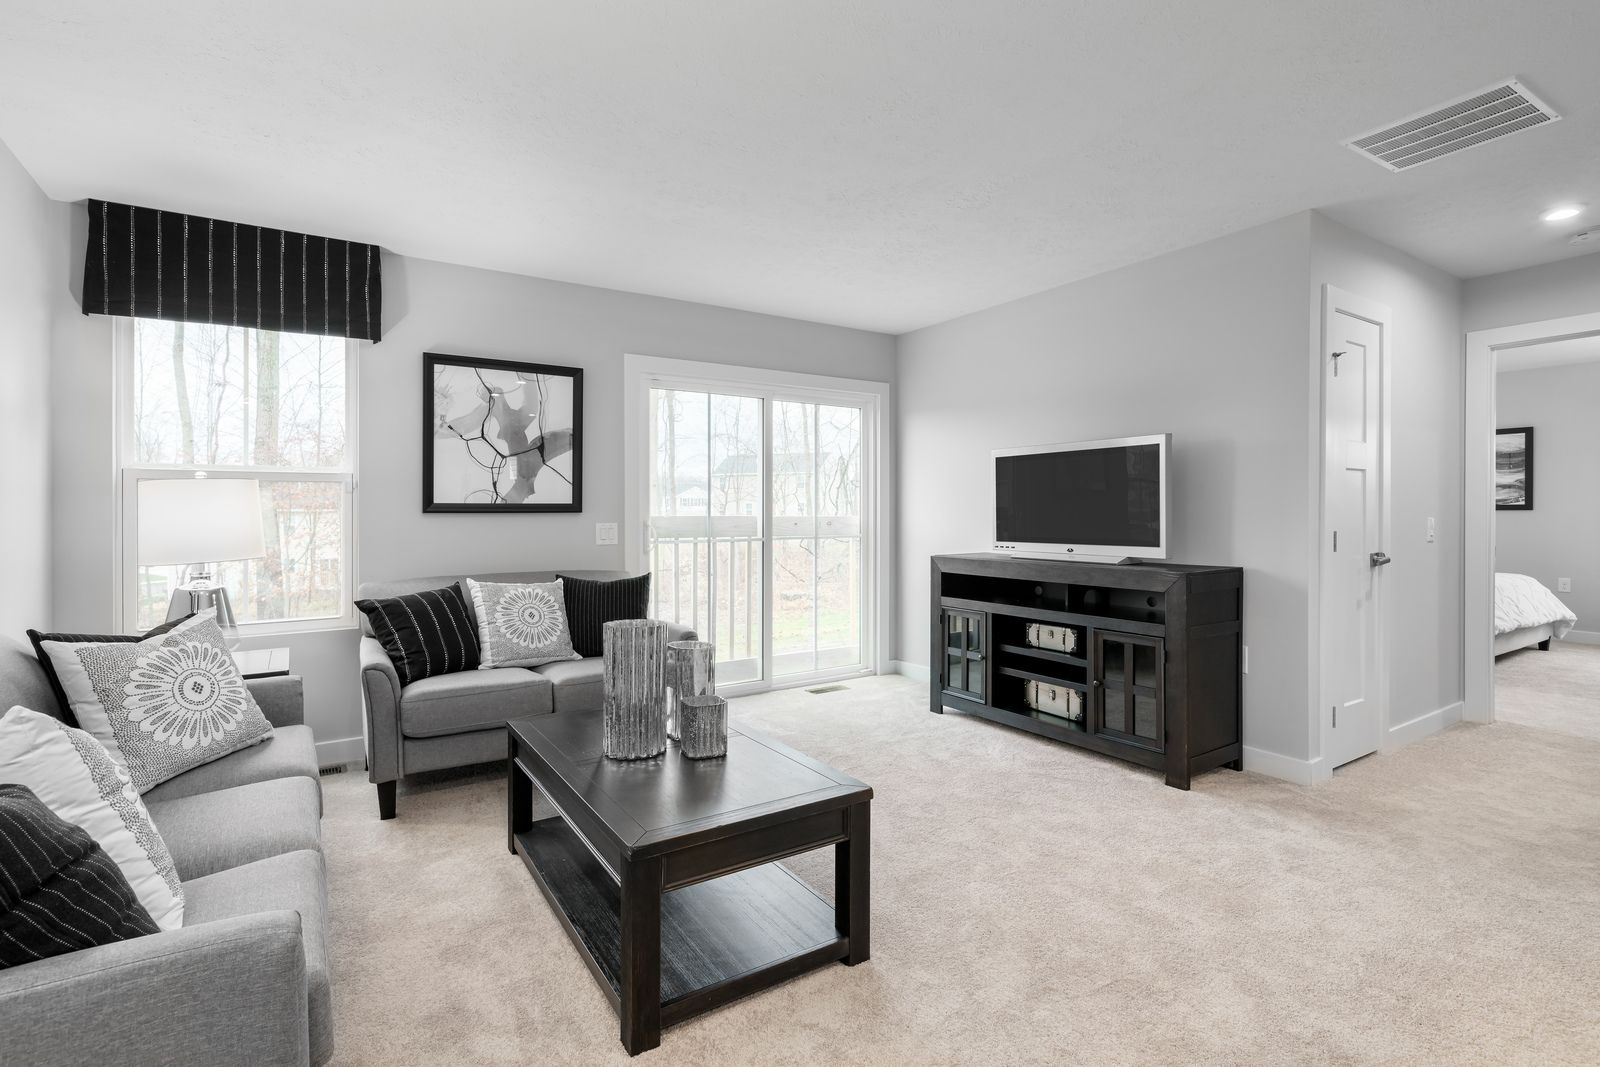 Living Area featured in the Aruba Bay By Ryan Homes in Akron, OH